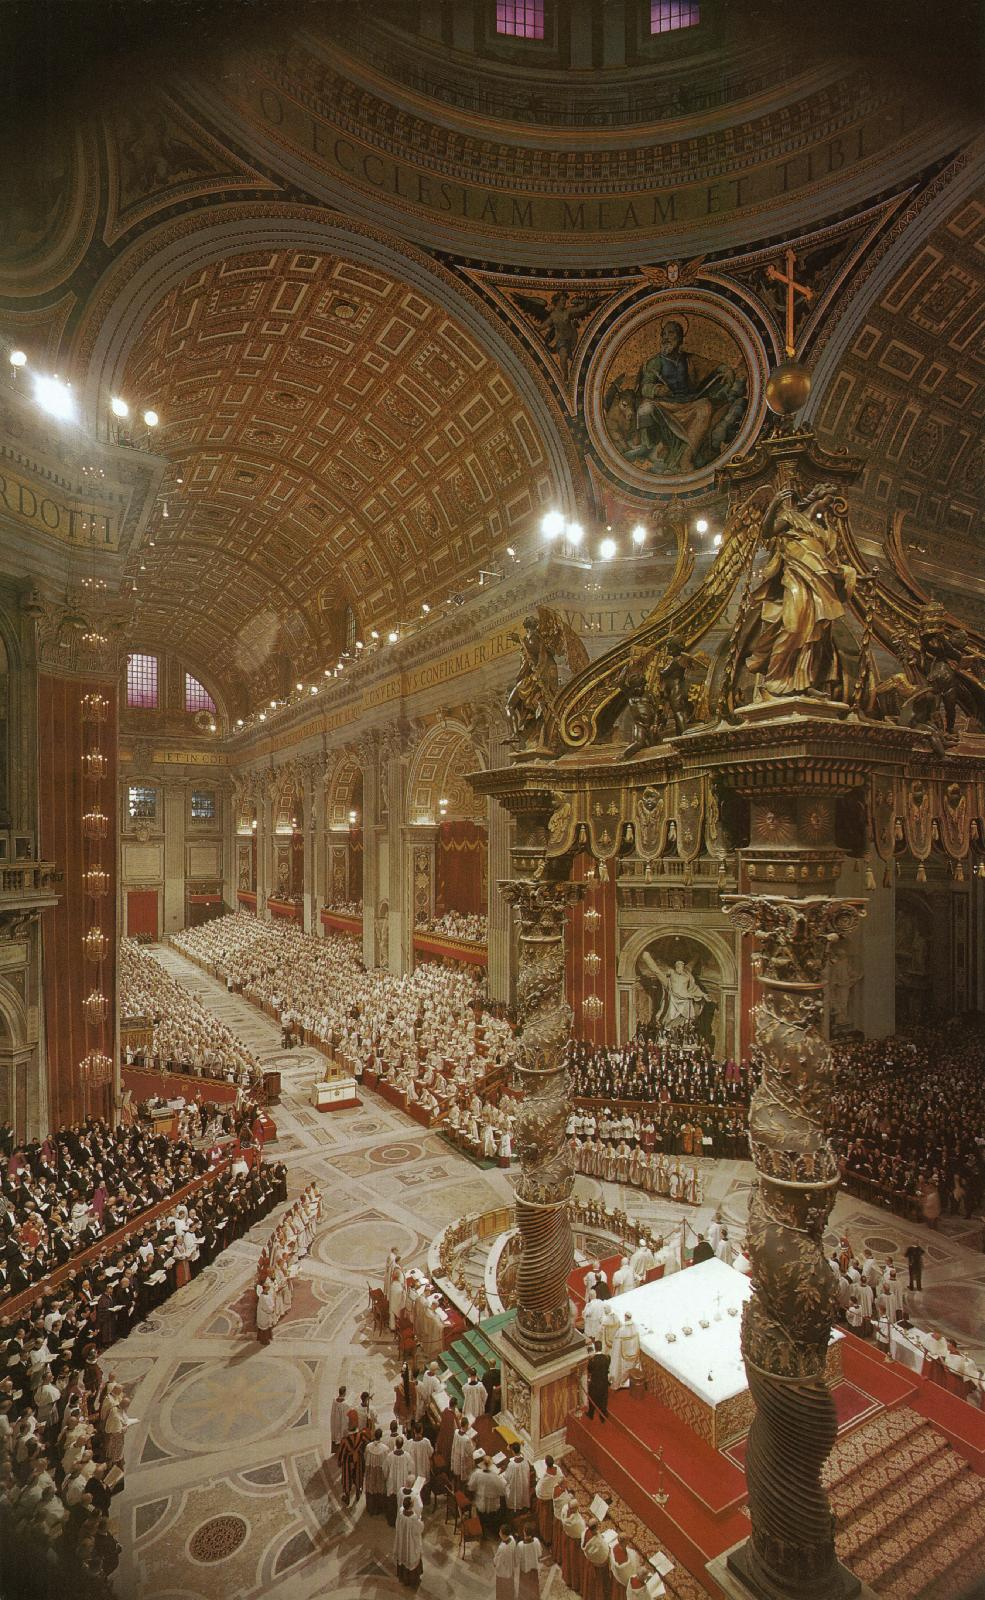 the second vatican council The second vatican council, fully the second ecumenical council of the vatican (latin: concilium oecumenicum vaticanum secundum) and informally known as vatican ii, addressed relations between the catholic church and the modern world.